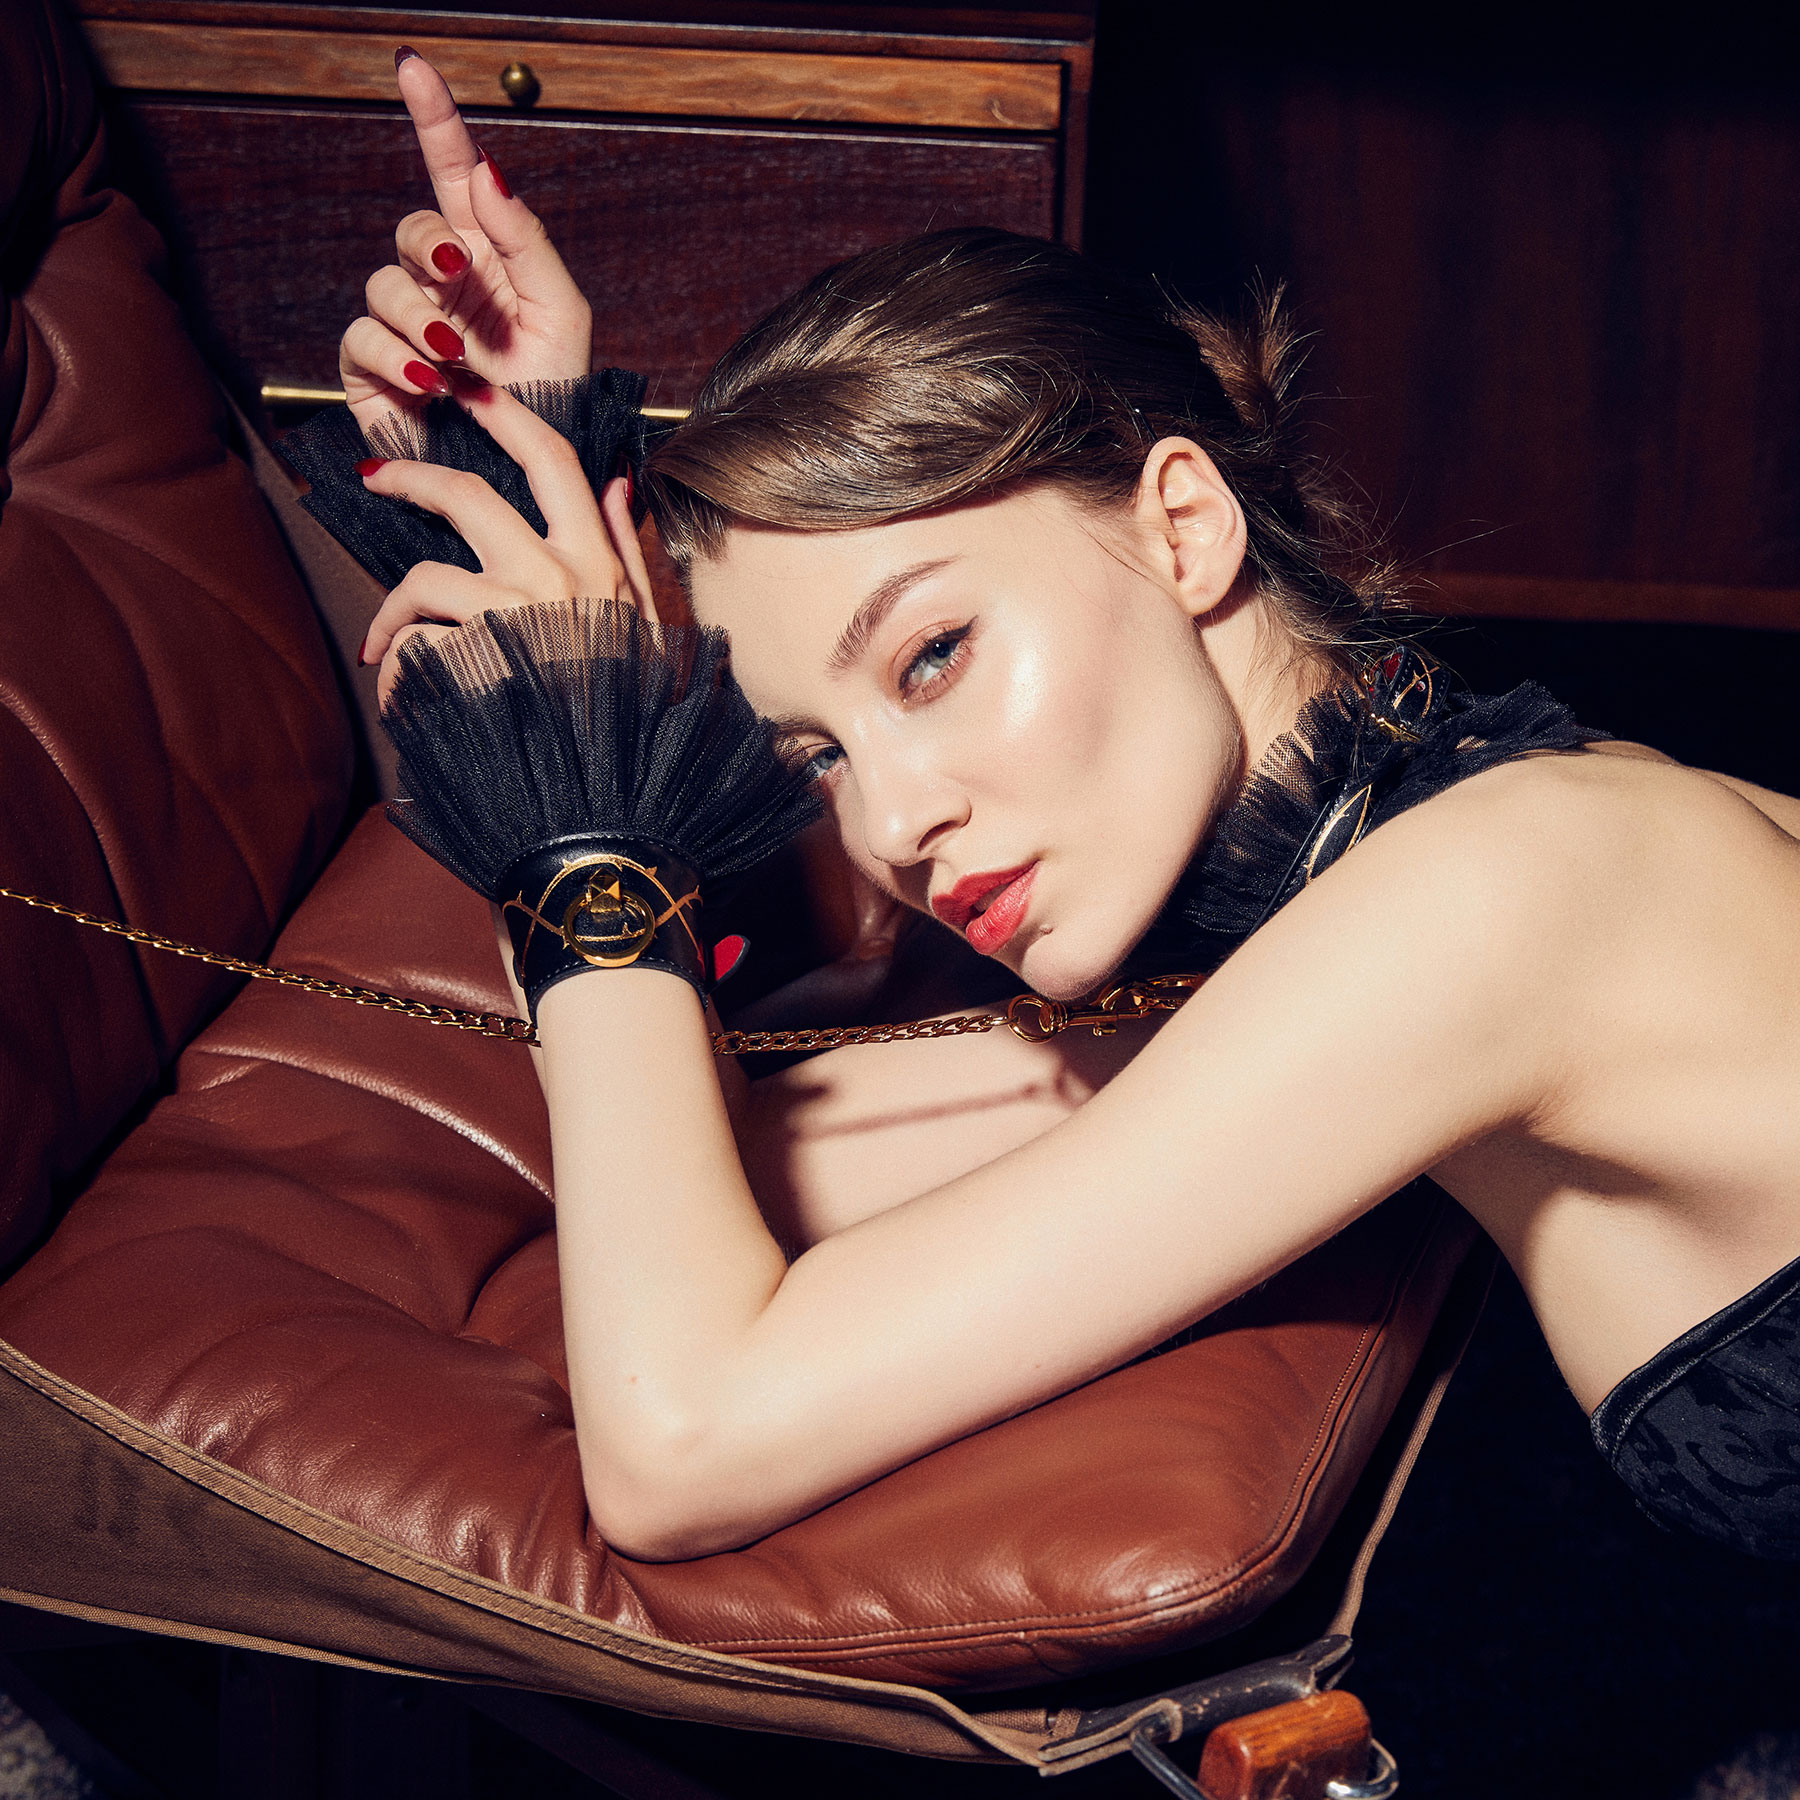 ZALO & UPKO Doll Designer Collection Leather Thorn Handcuffs Displayed On Model 3